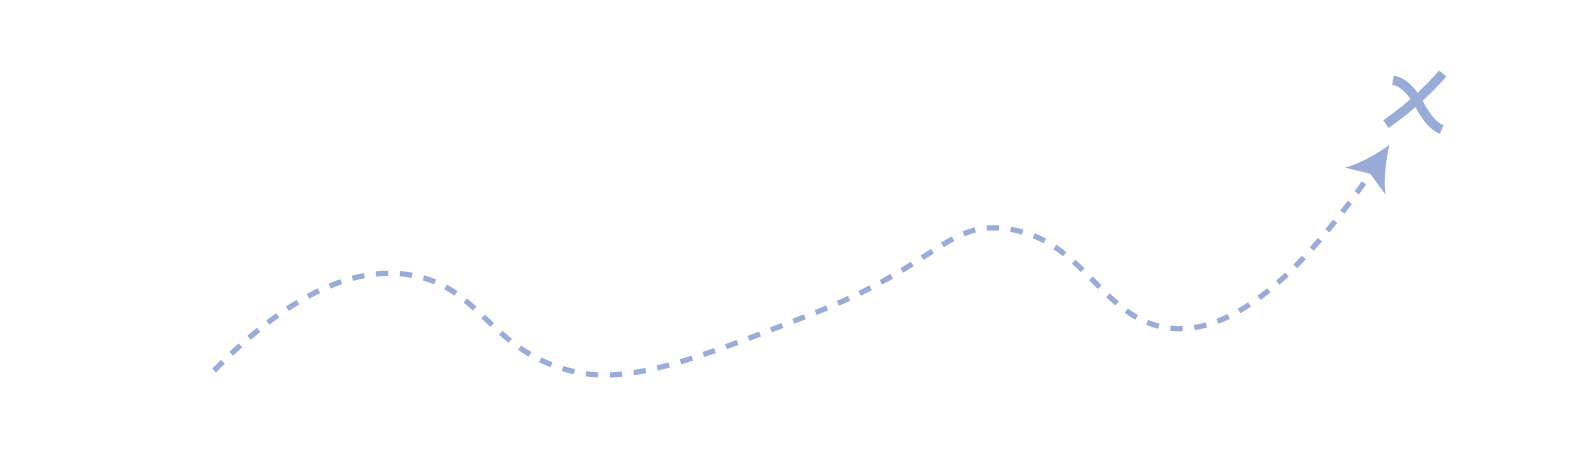 Vector image of a dotted line leading to an X   'X' marks the spot